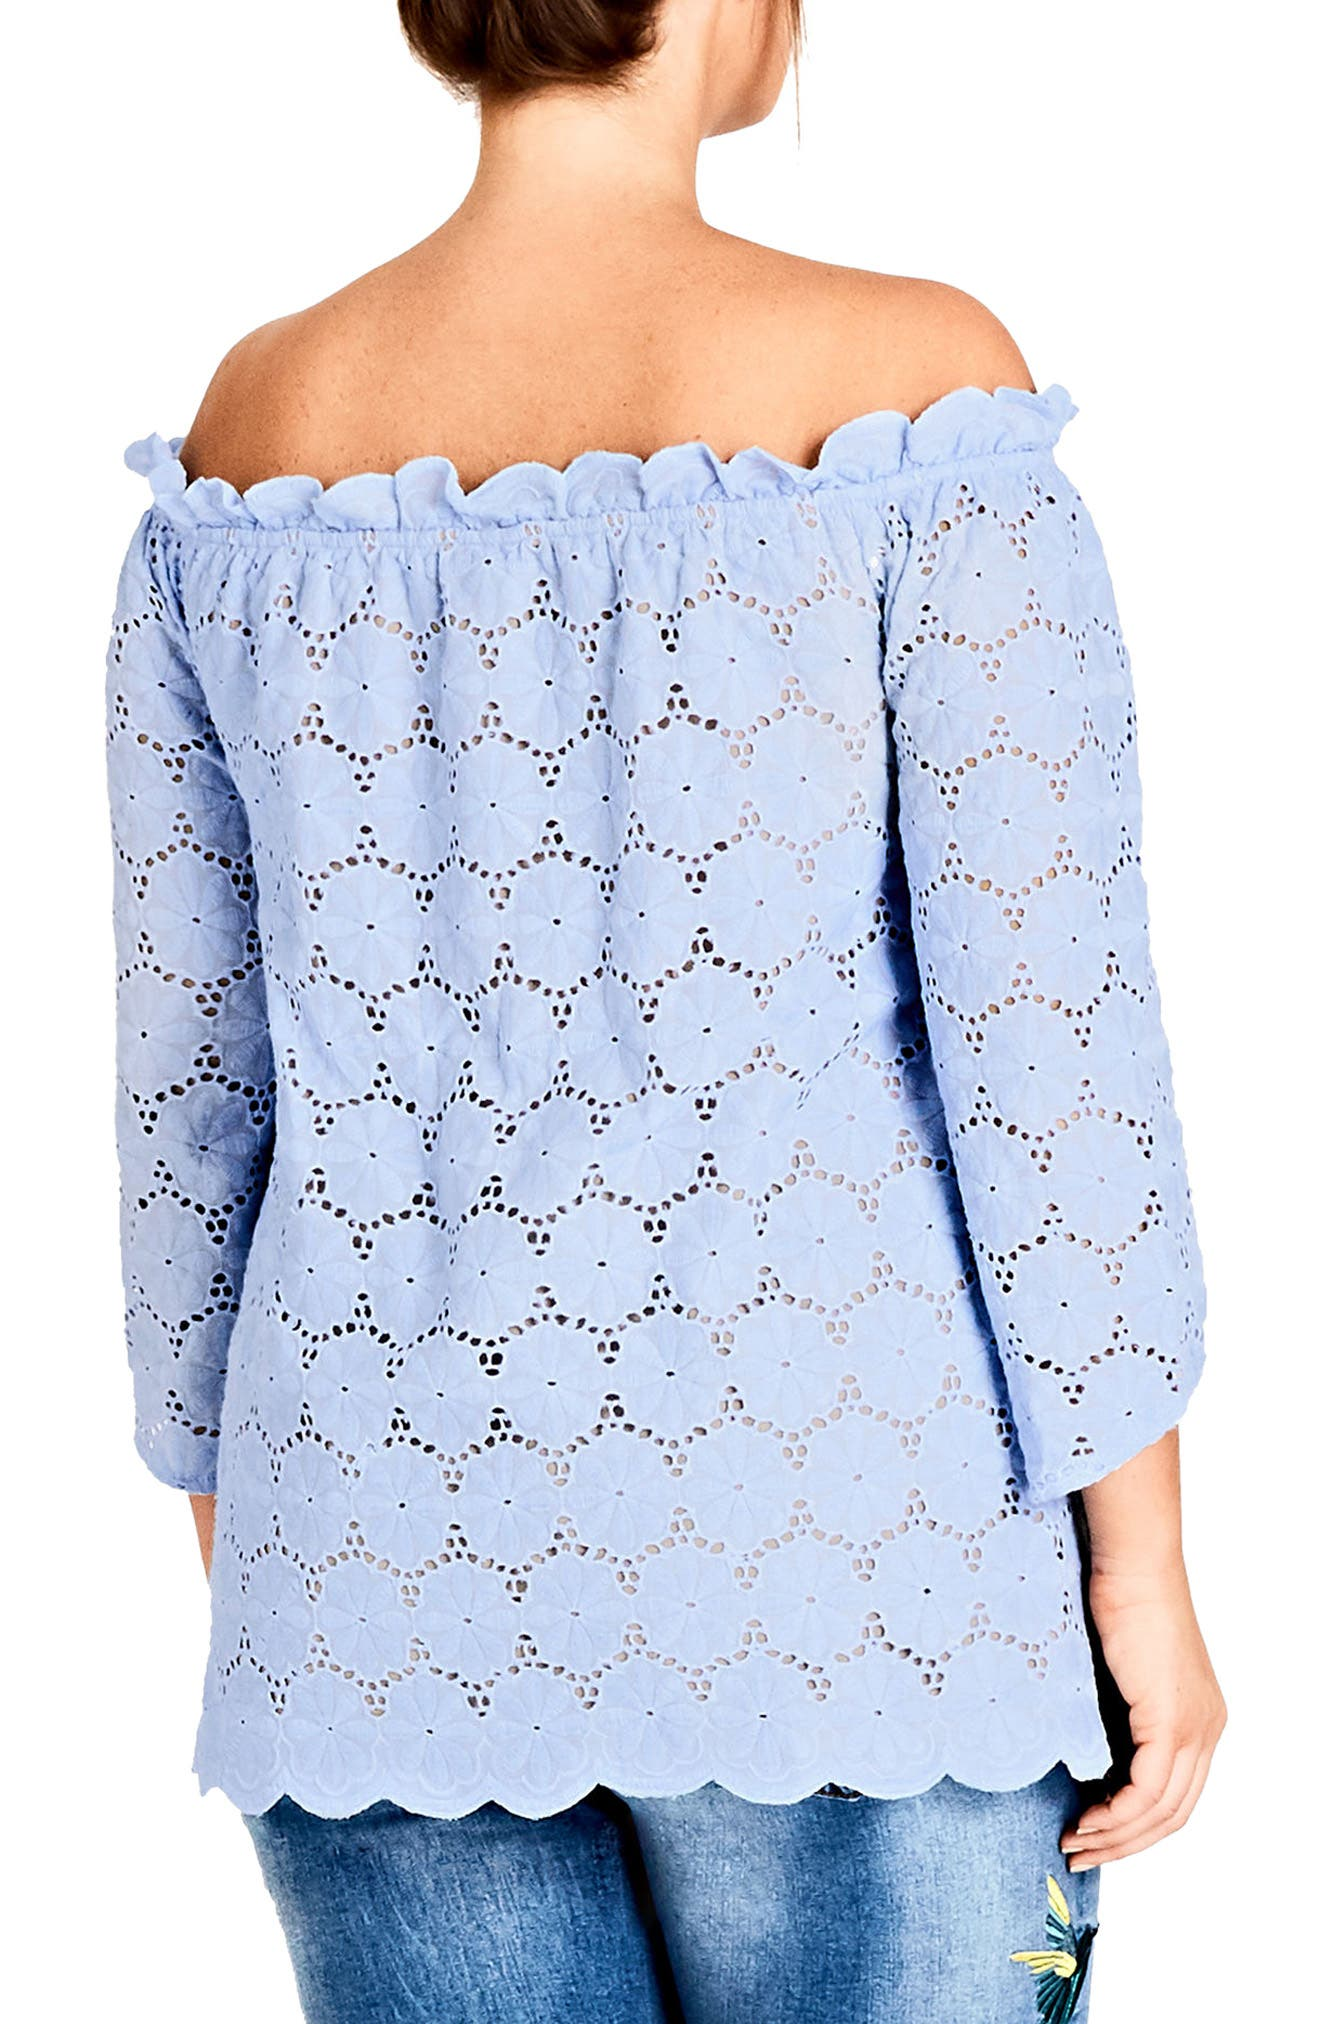 Swiss Affair Lace Off the Shoulder Top,                             Alternate thumbnail 2, color,                             Powder Blue